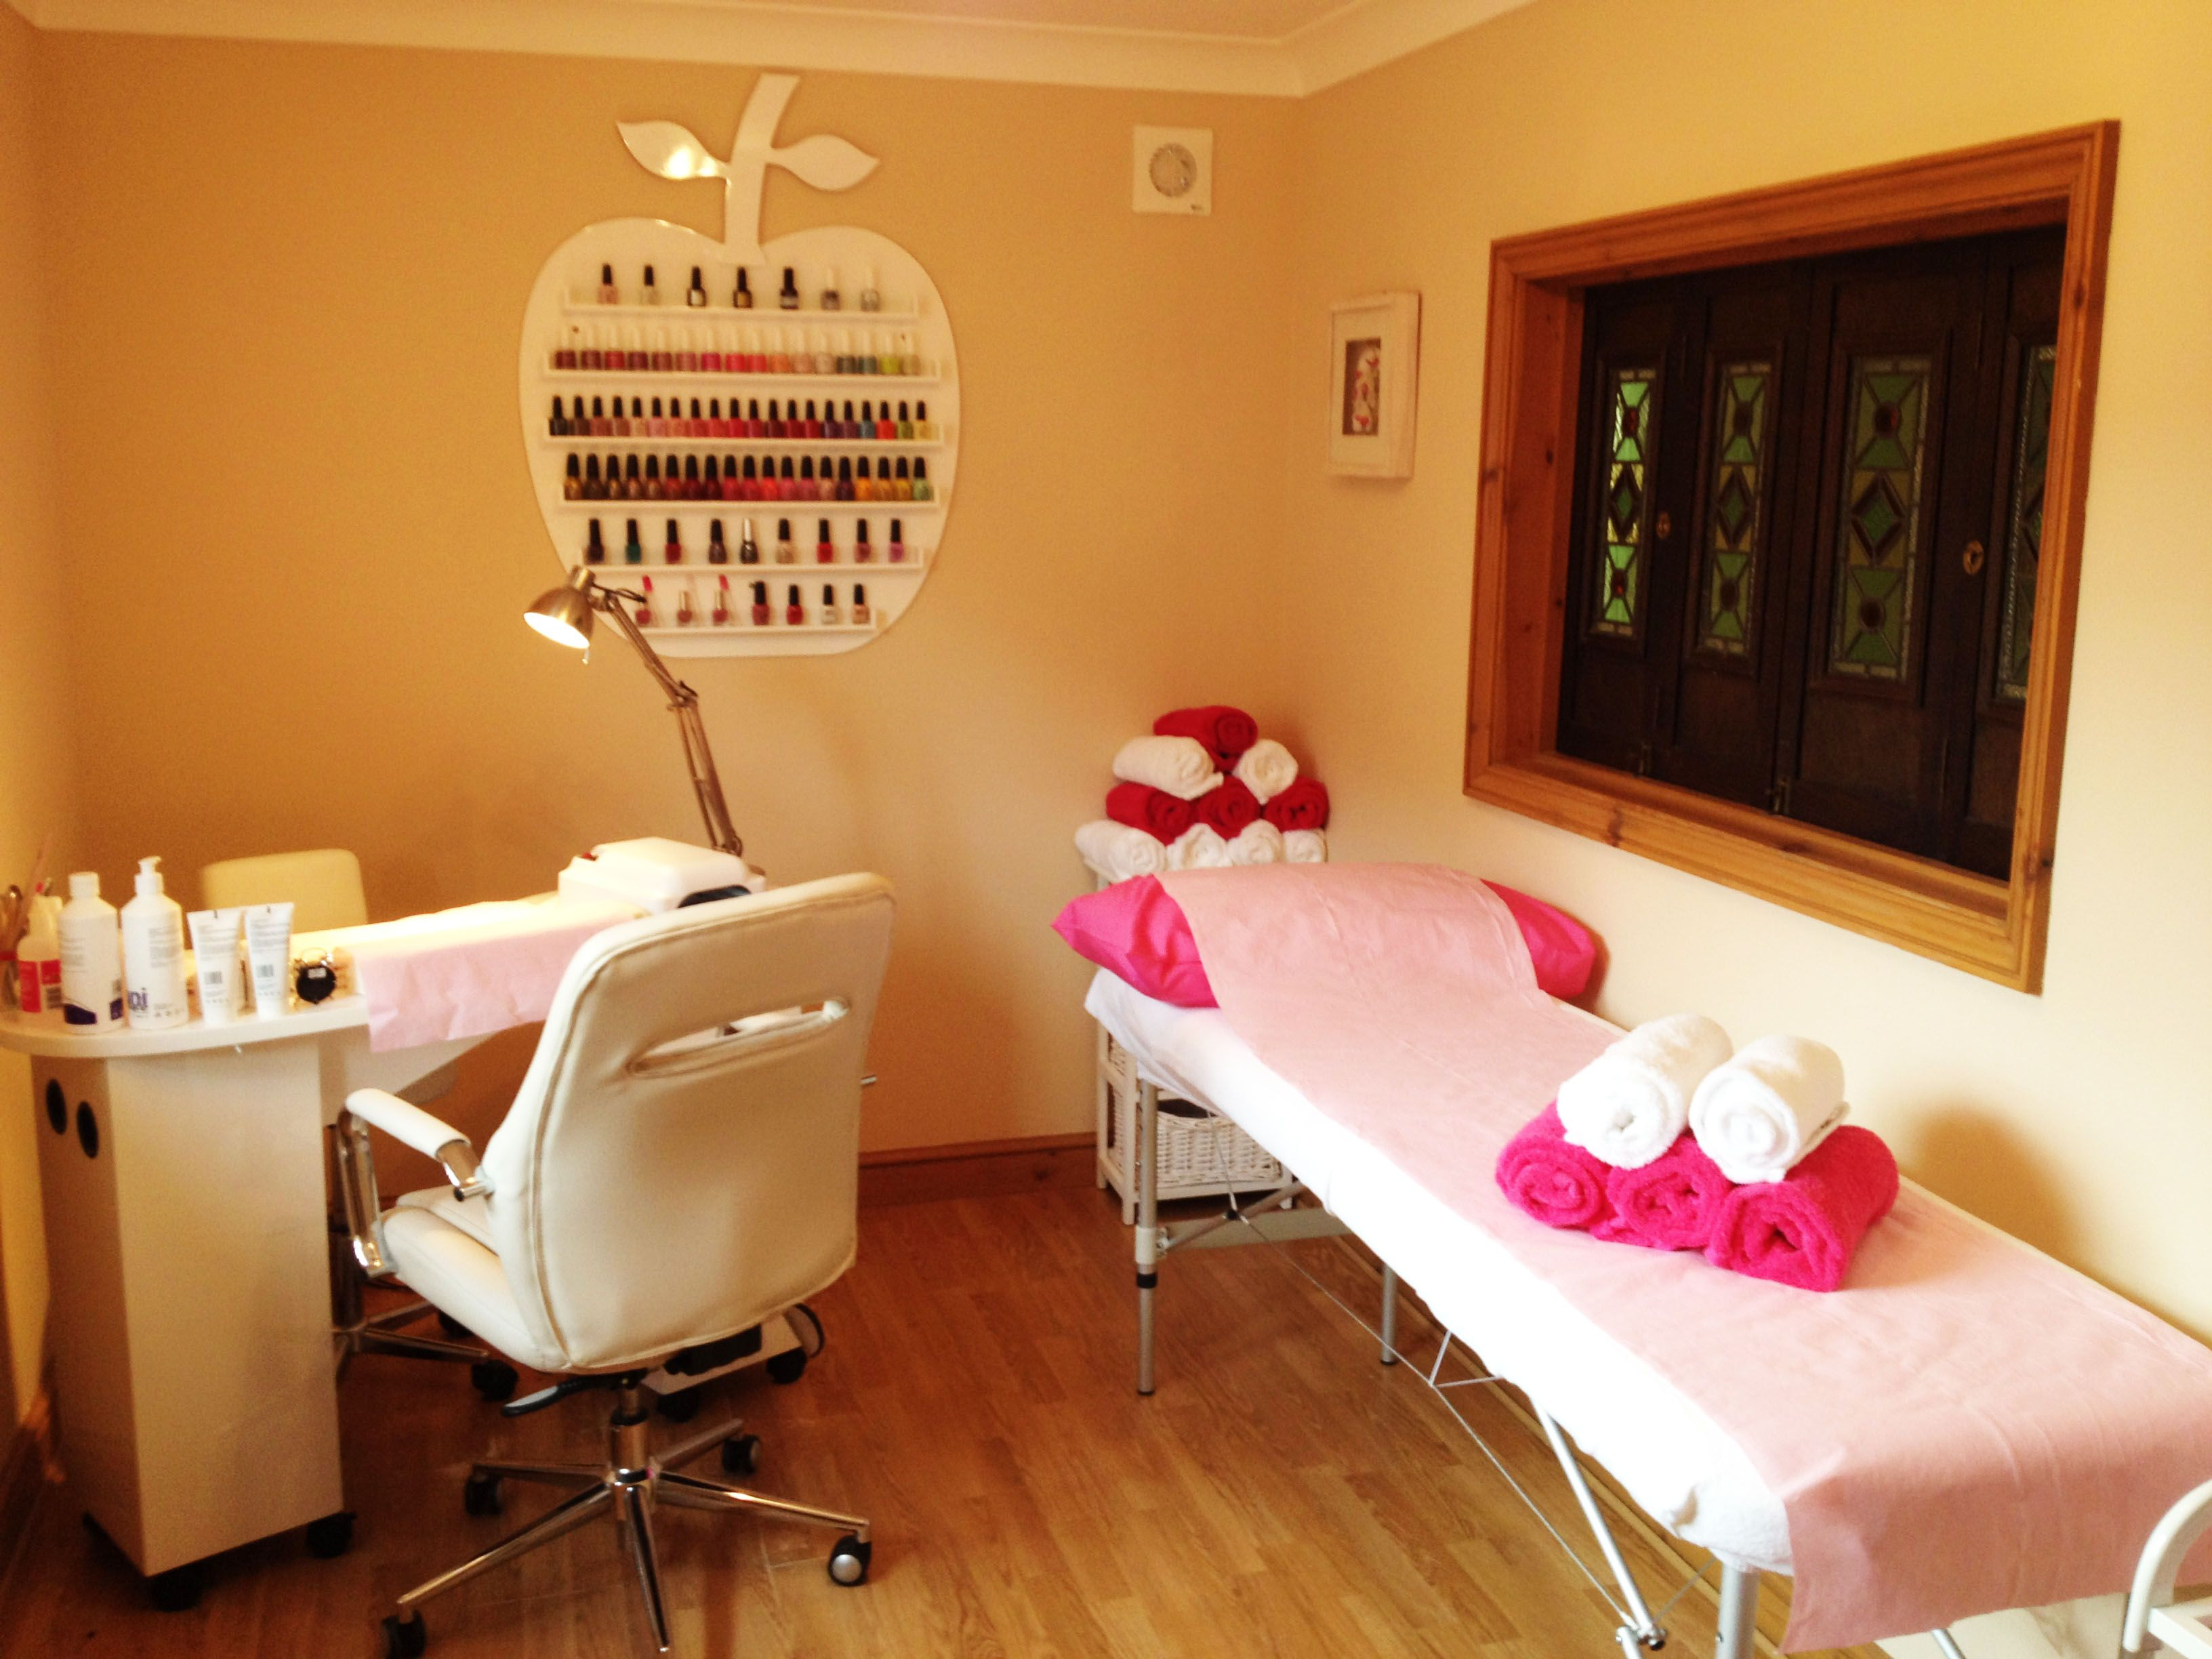 small nail salon - Google Search  Nail salon design, Home beauty